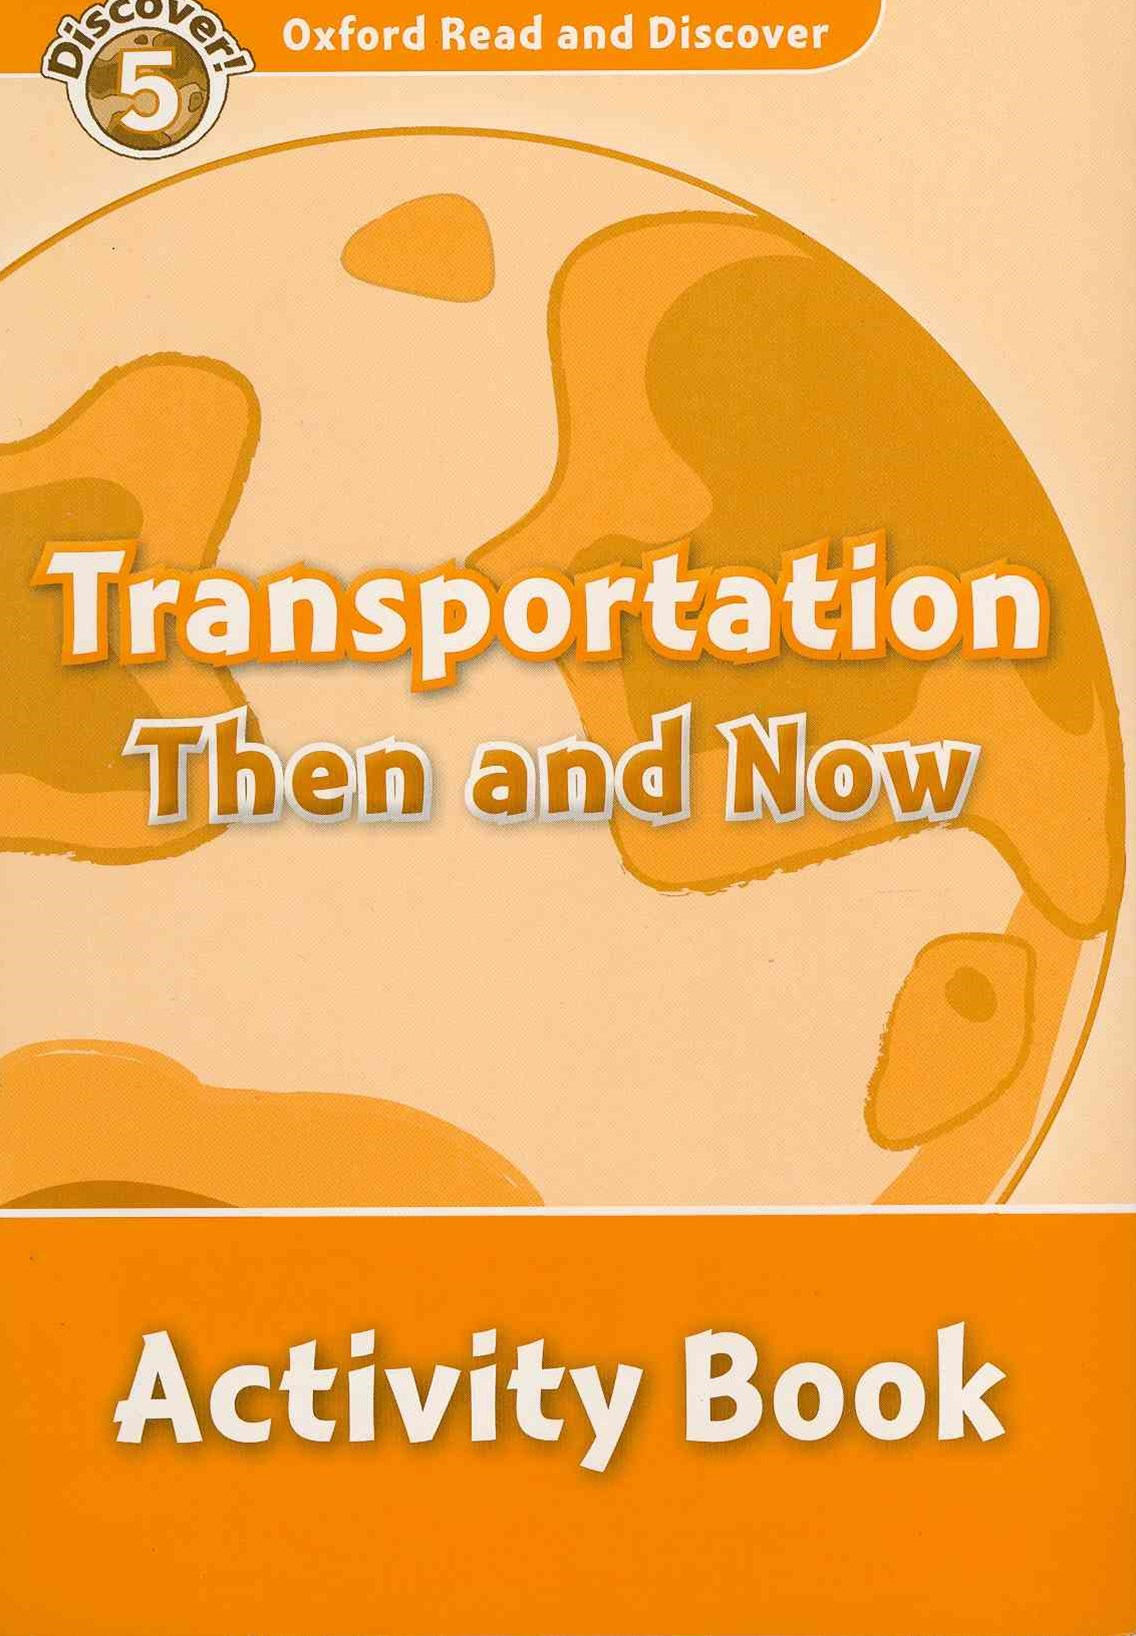 Oxford Read and Discover 5 Transportation Then and Now Activity Book